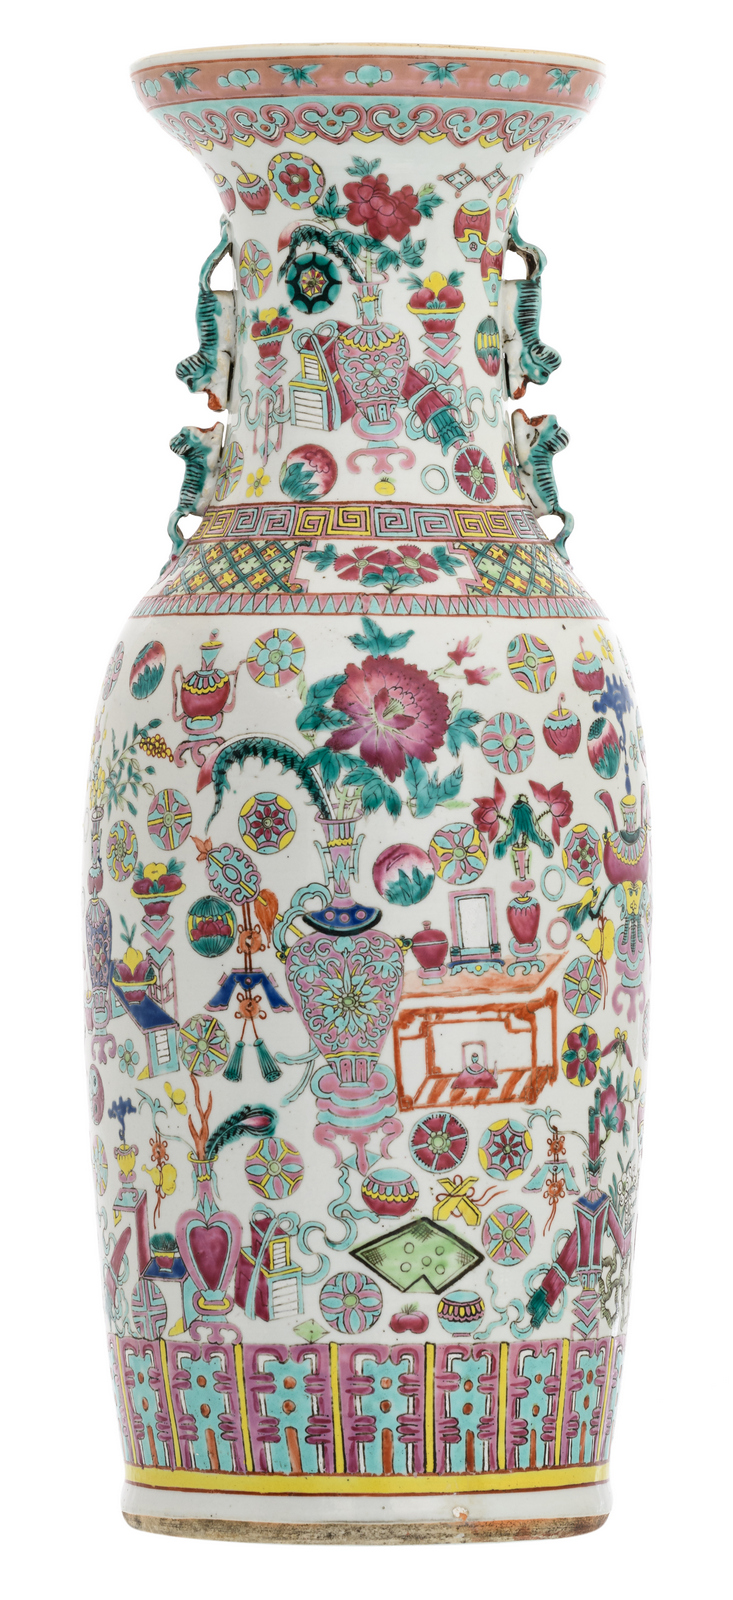 A Chinese famille rose one hundred antiquities decorated vase, 19thC